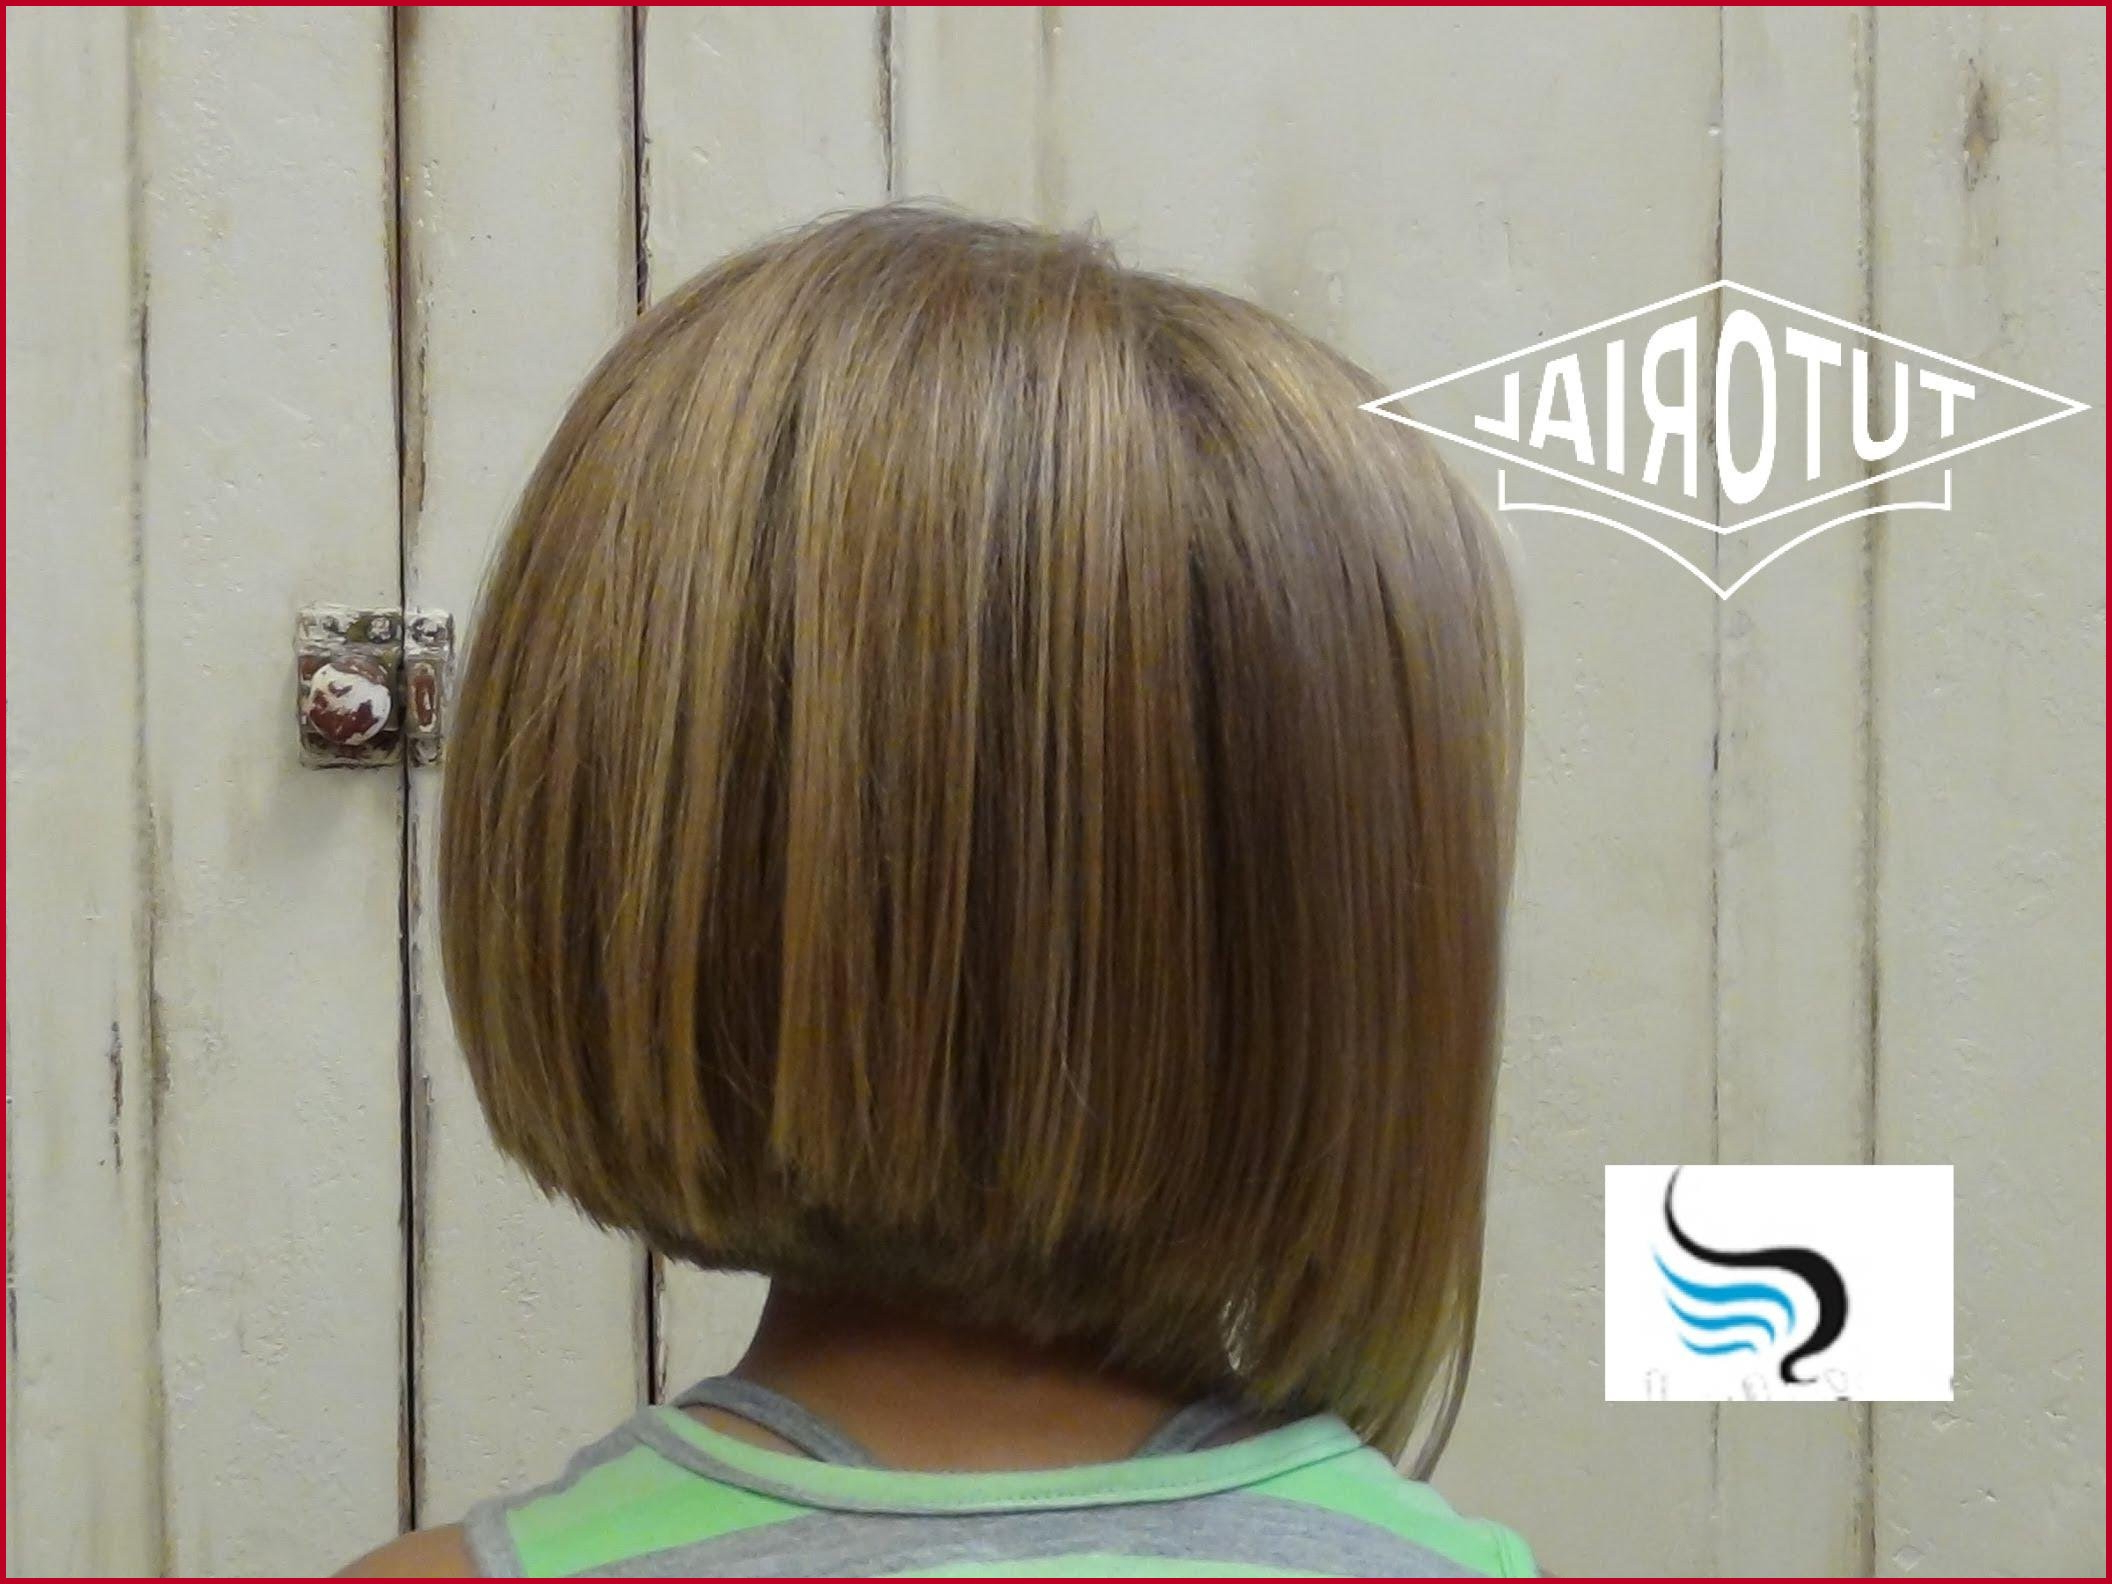 A Line Bob Haircuts 63806 Little Girl Bob Haircut Adorable A Line Regarding Trendy Cute A Line Bob Hairstyles With Volume Towards The Ends (View 8 of 20)